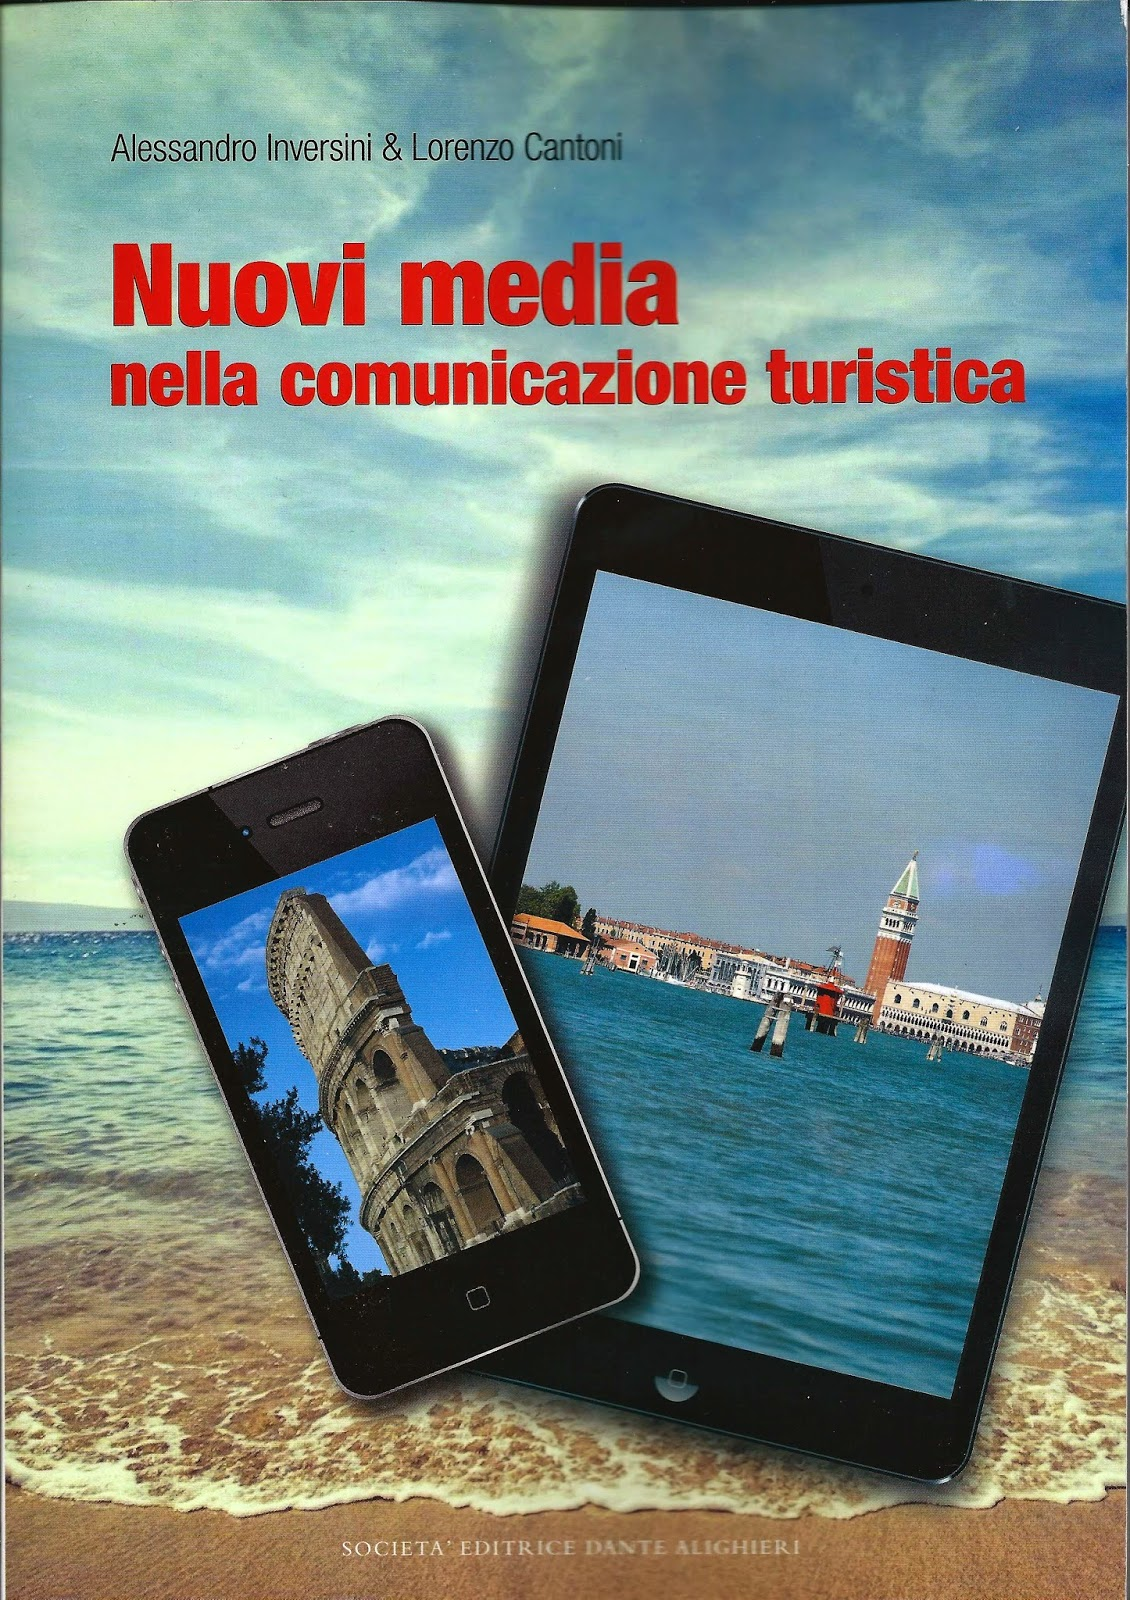 http://www.societaeditricedantealighieri.it/libreria/index.php?main_page=product_info&cPath=133&products_id=1629